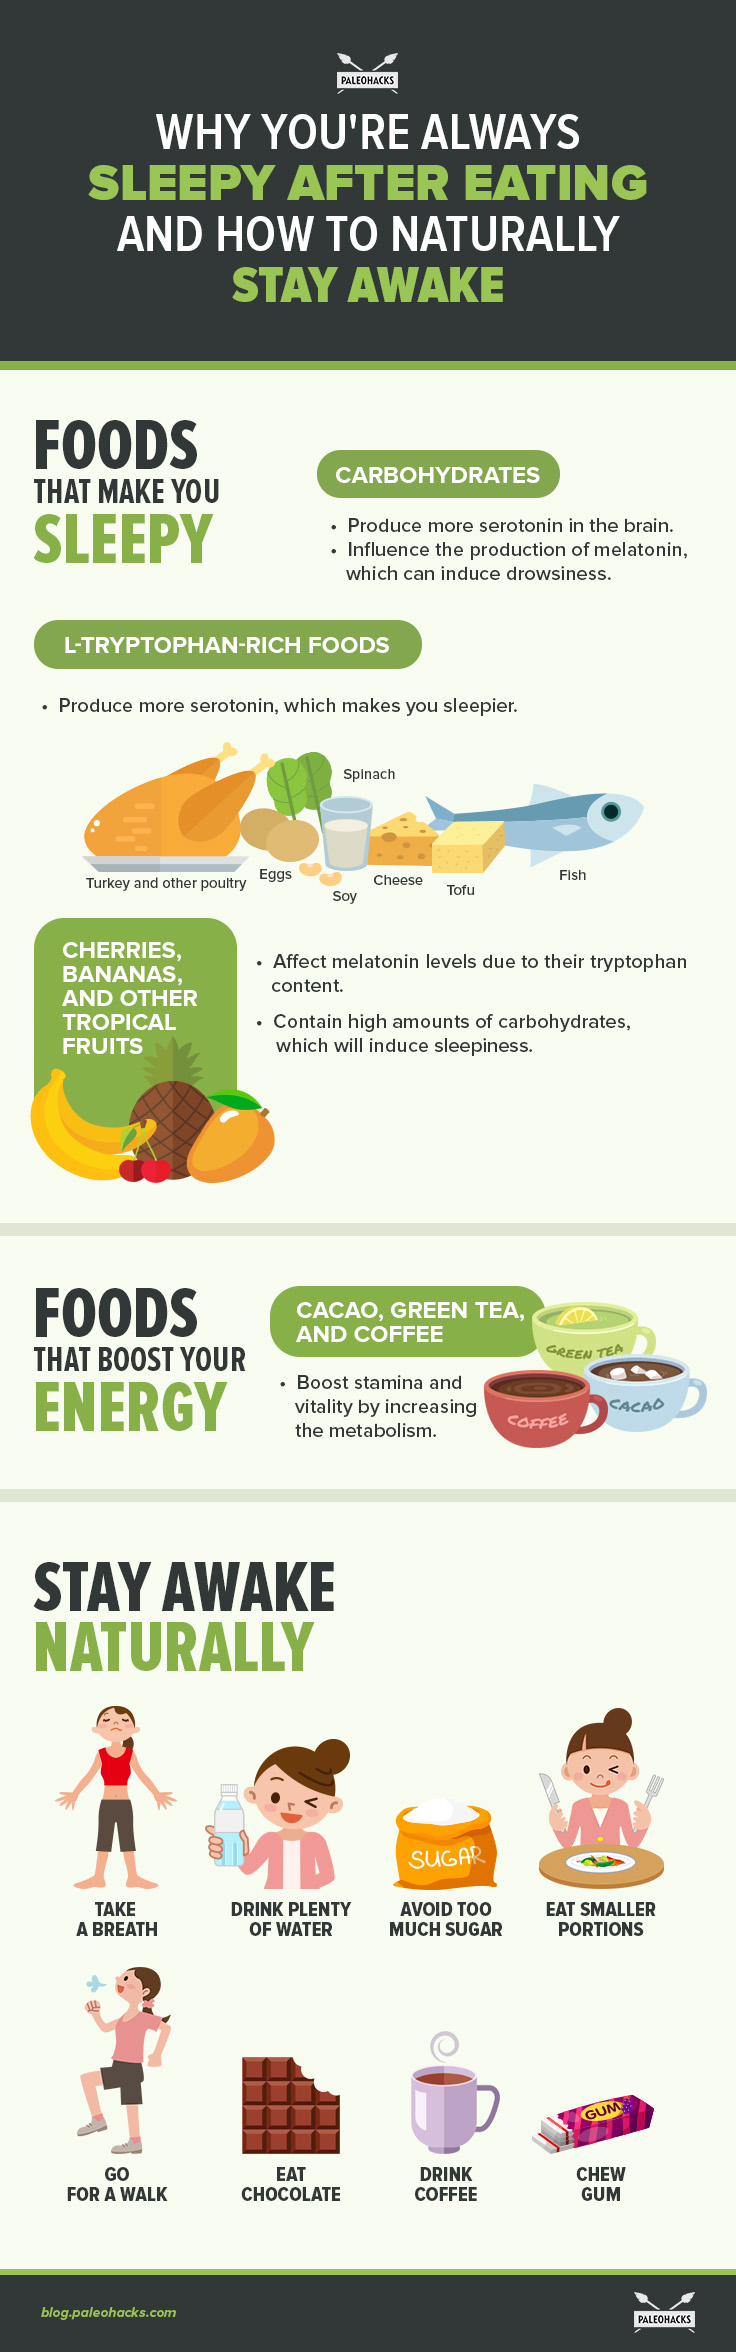 Why You Re Always Sleepy After Eating And How To Naturally Stay Awake How To Stay Awake Sleepy After Eating Eat